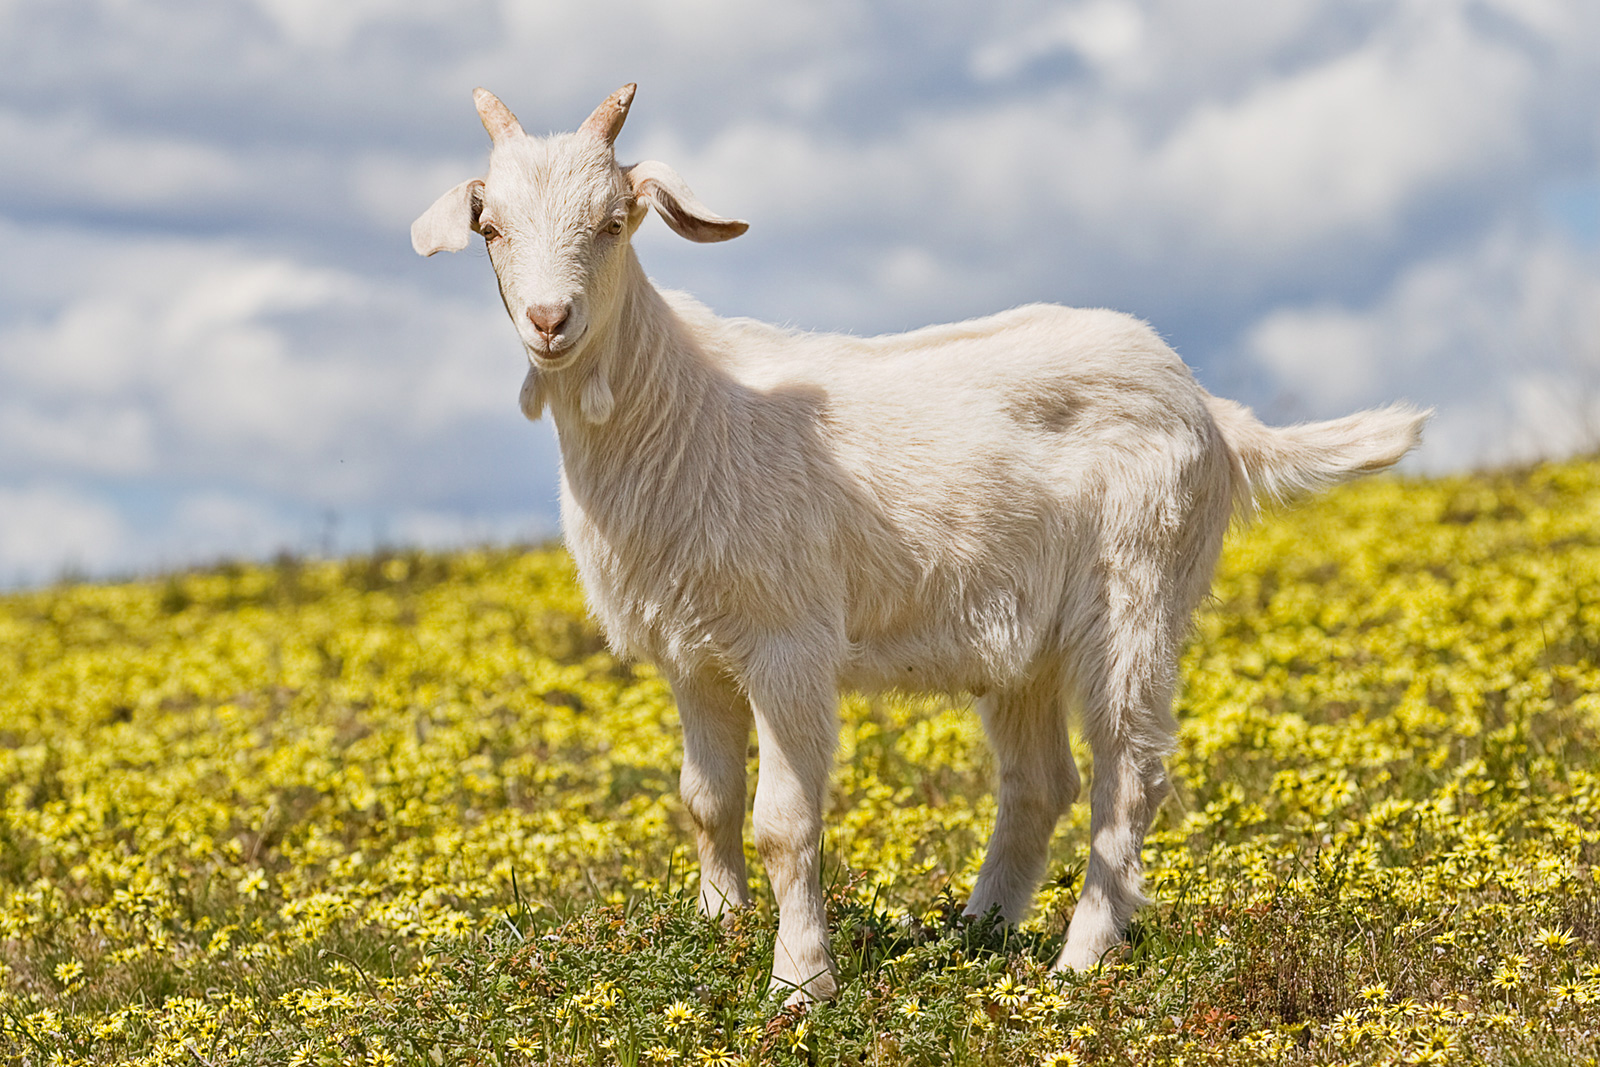 http://dic.academic.ru/pictures/wiki/files/100/domestic_goat_kid_in_capeweed.jpg